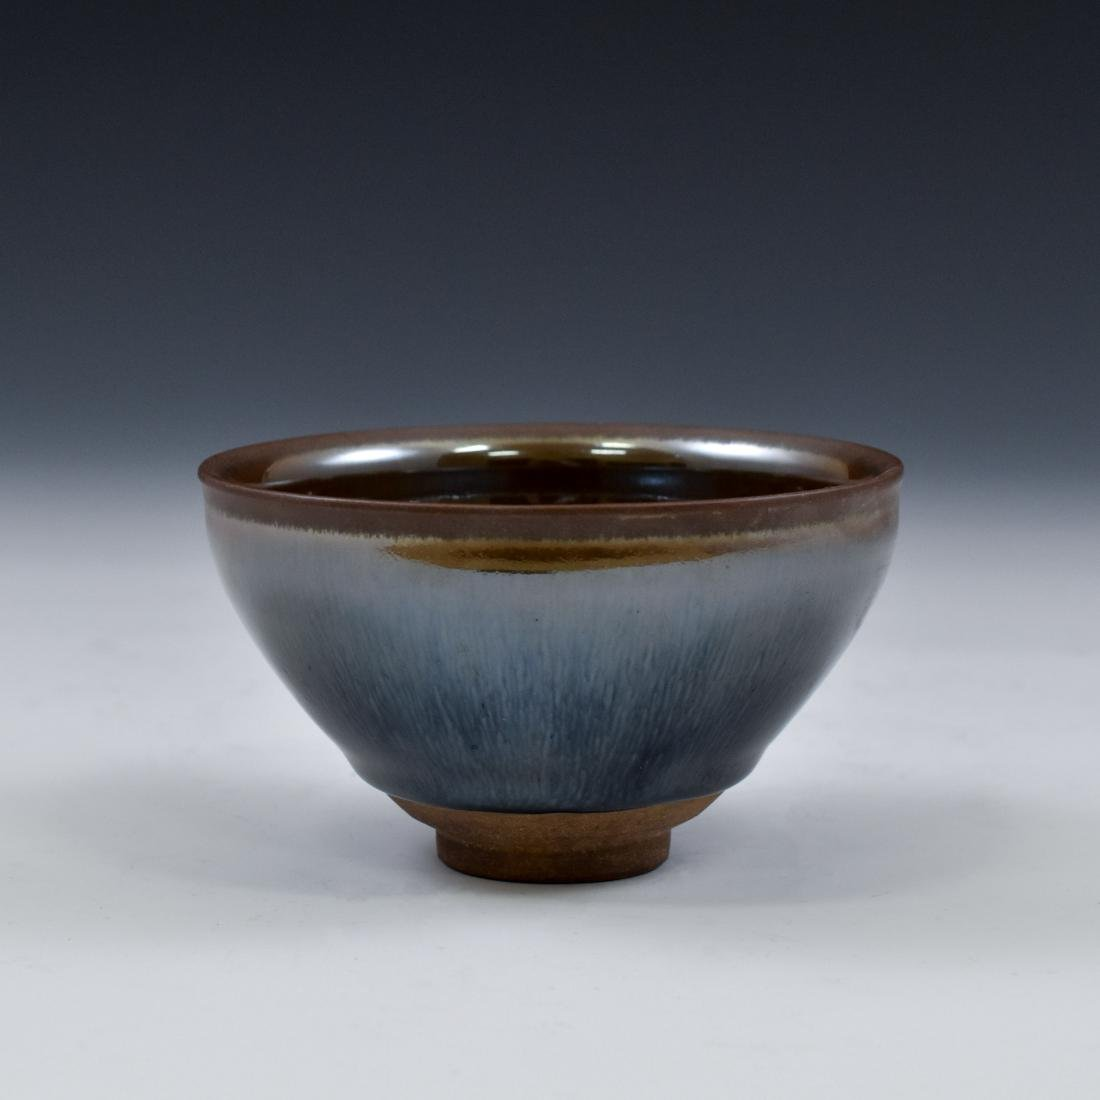 CHINESE JIAN WARE 'HARE FUR' TEA BOWL - 10